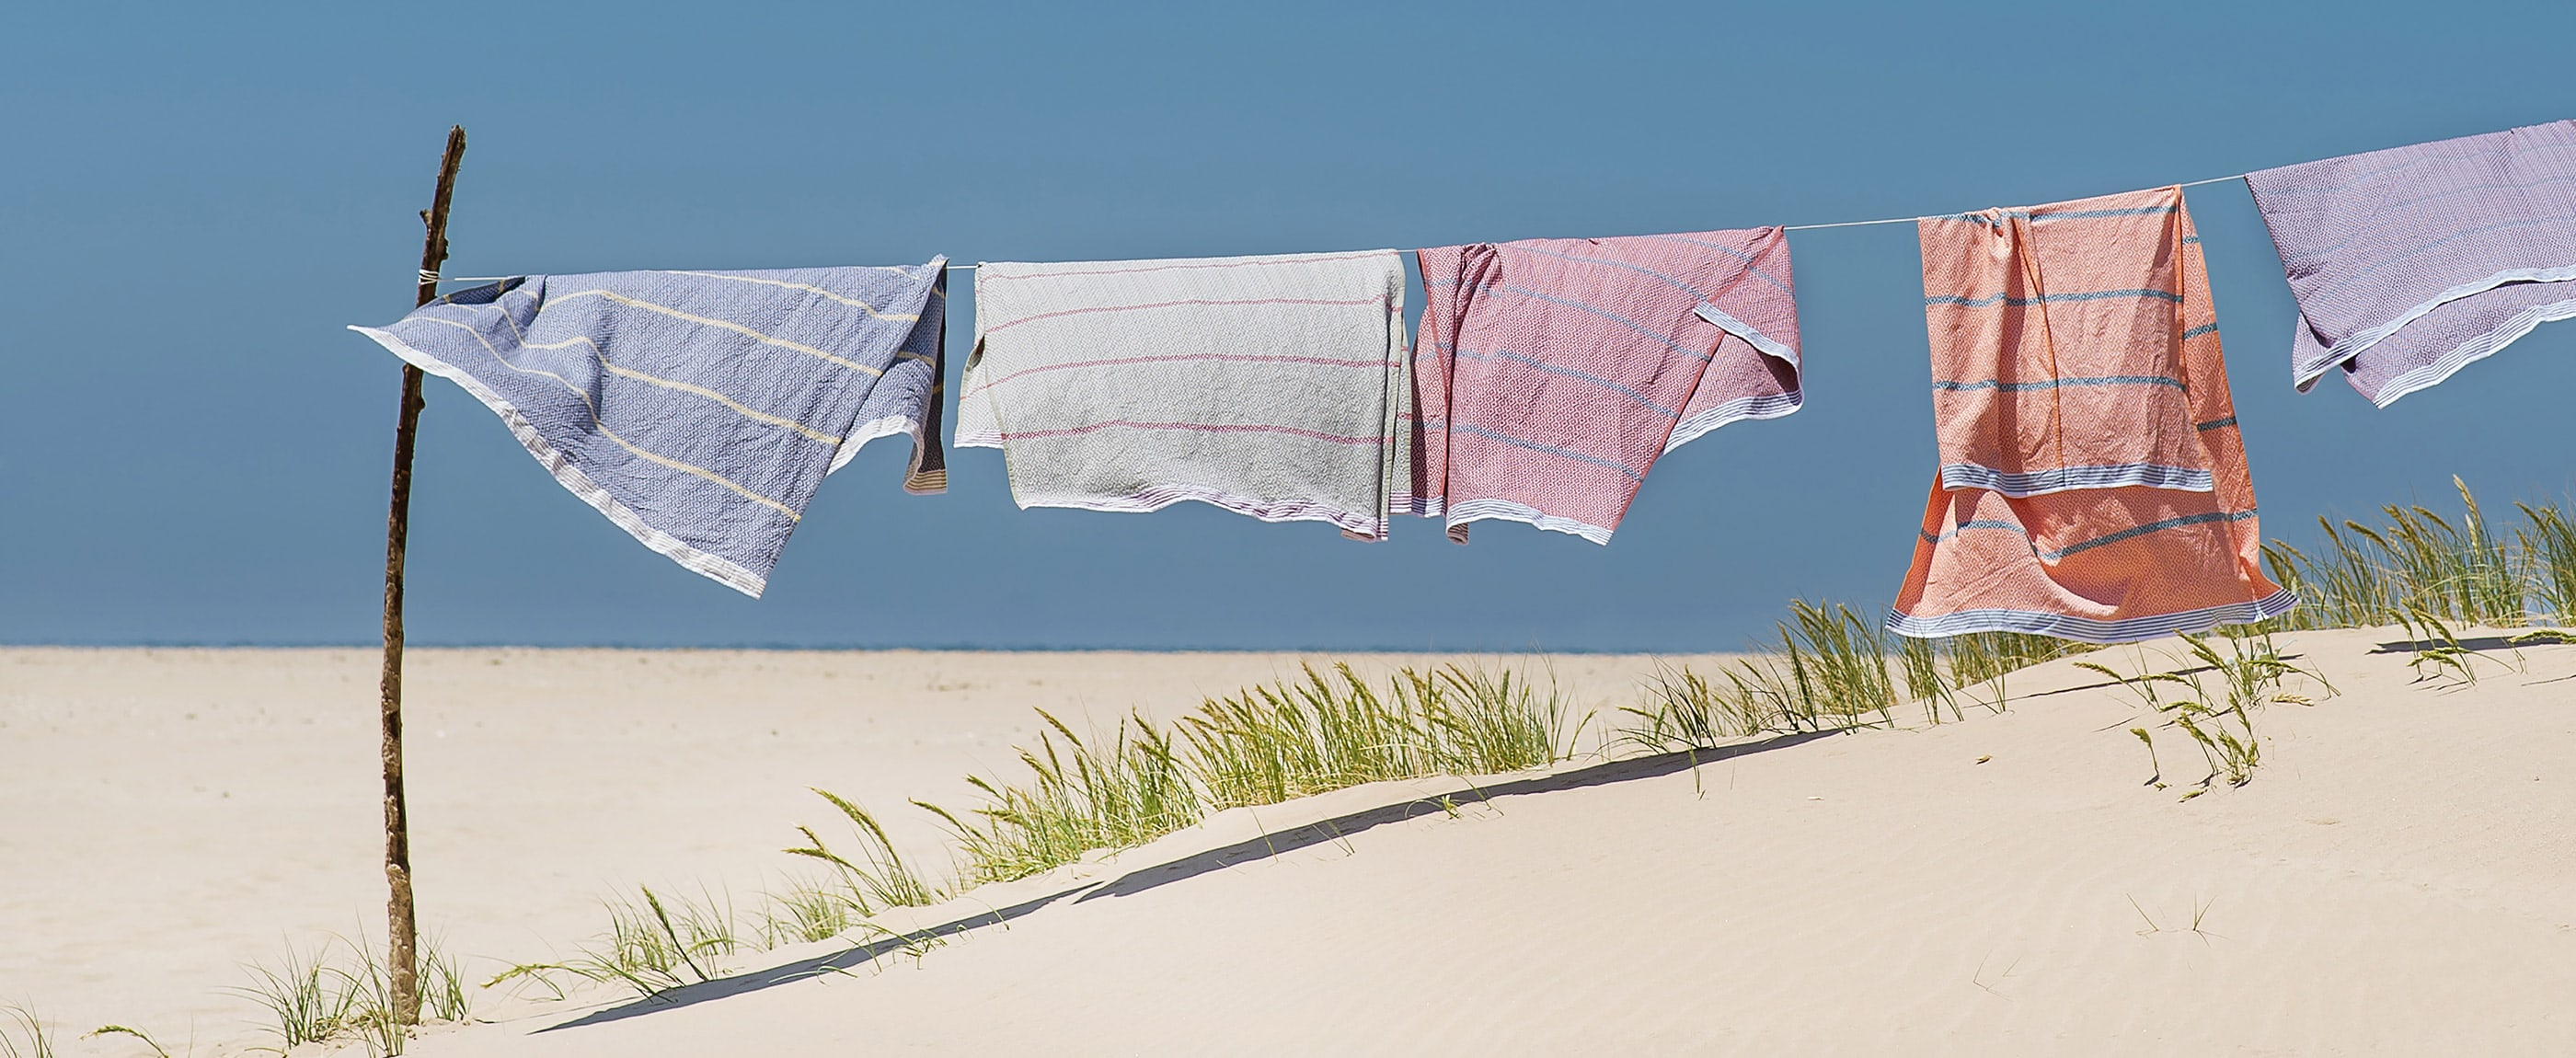 Mungo Flat Weave Towels hanging in the breeze. Made from natural fibres in South Africa